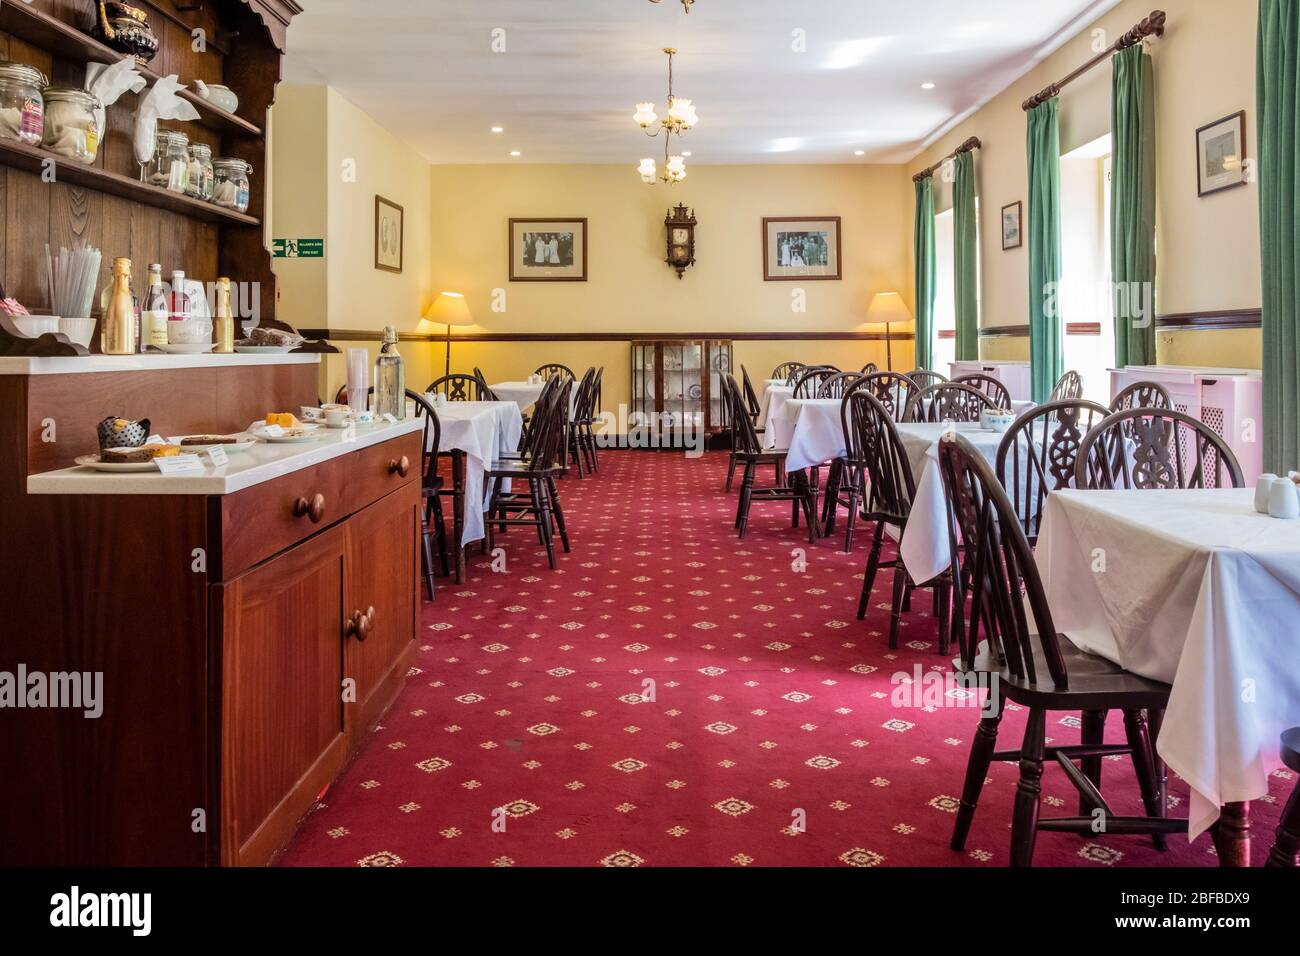 https://c7.alamy.com/comp/2BFBDX9/gwalia-stores-tea-rooms-at-st-fagans-national-museum-of-history-cardiff-wales-gb-uk-2BFBDX9.jpg